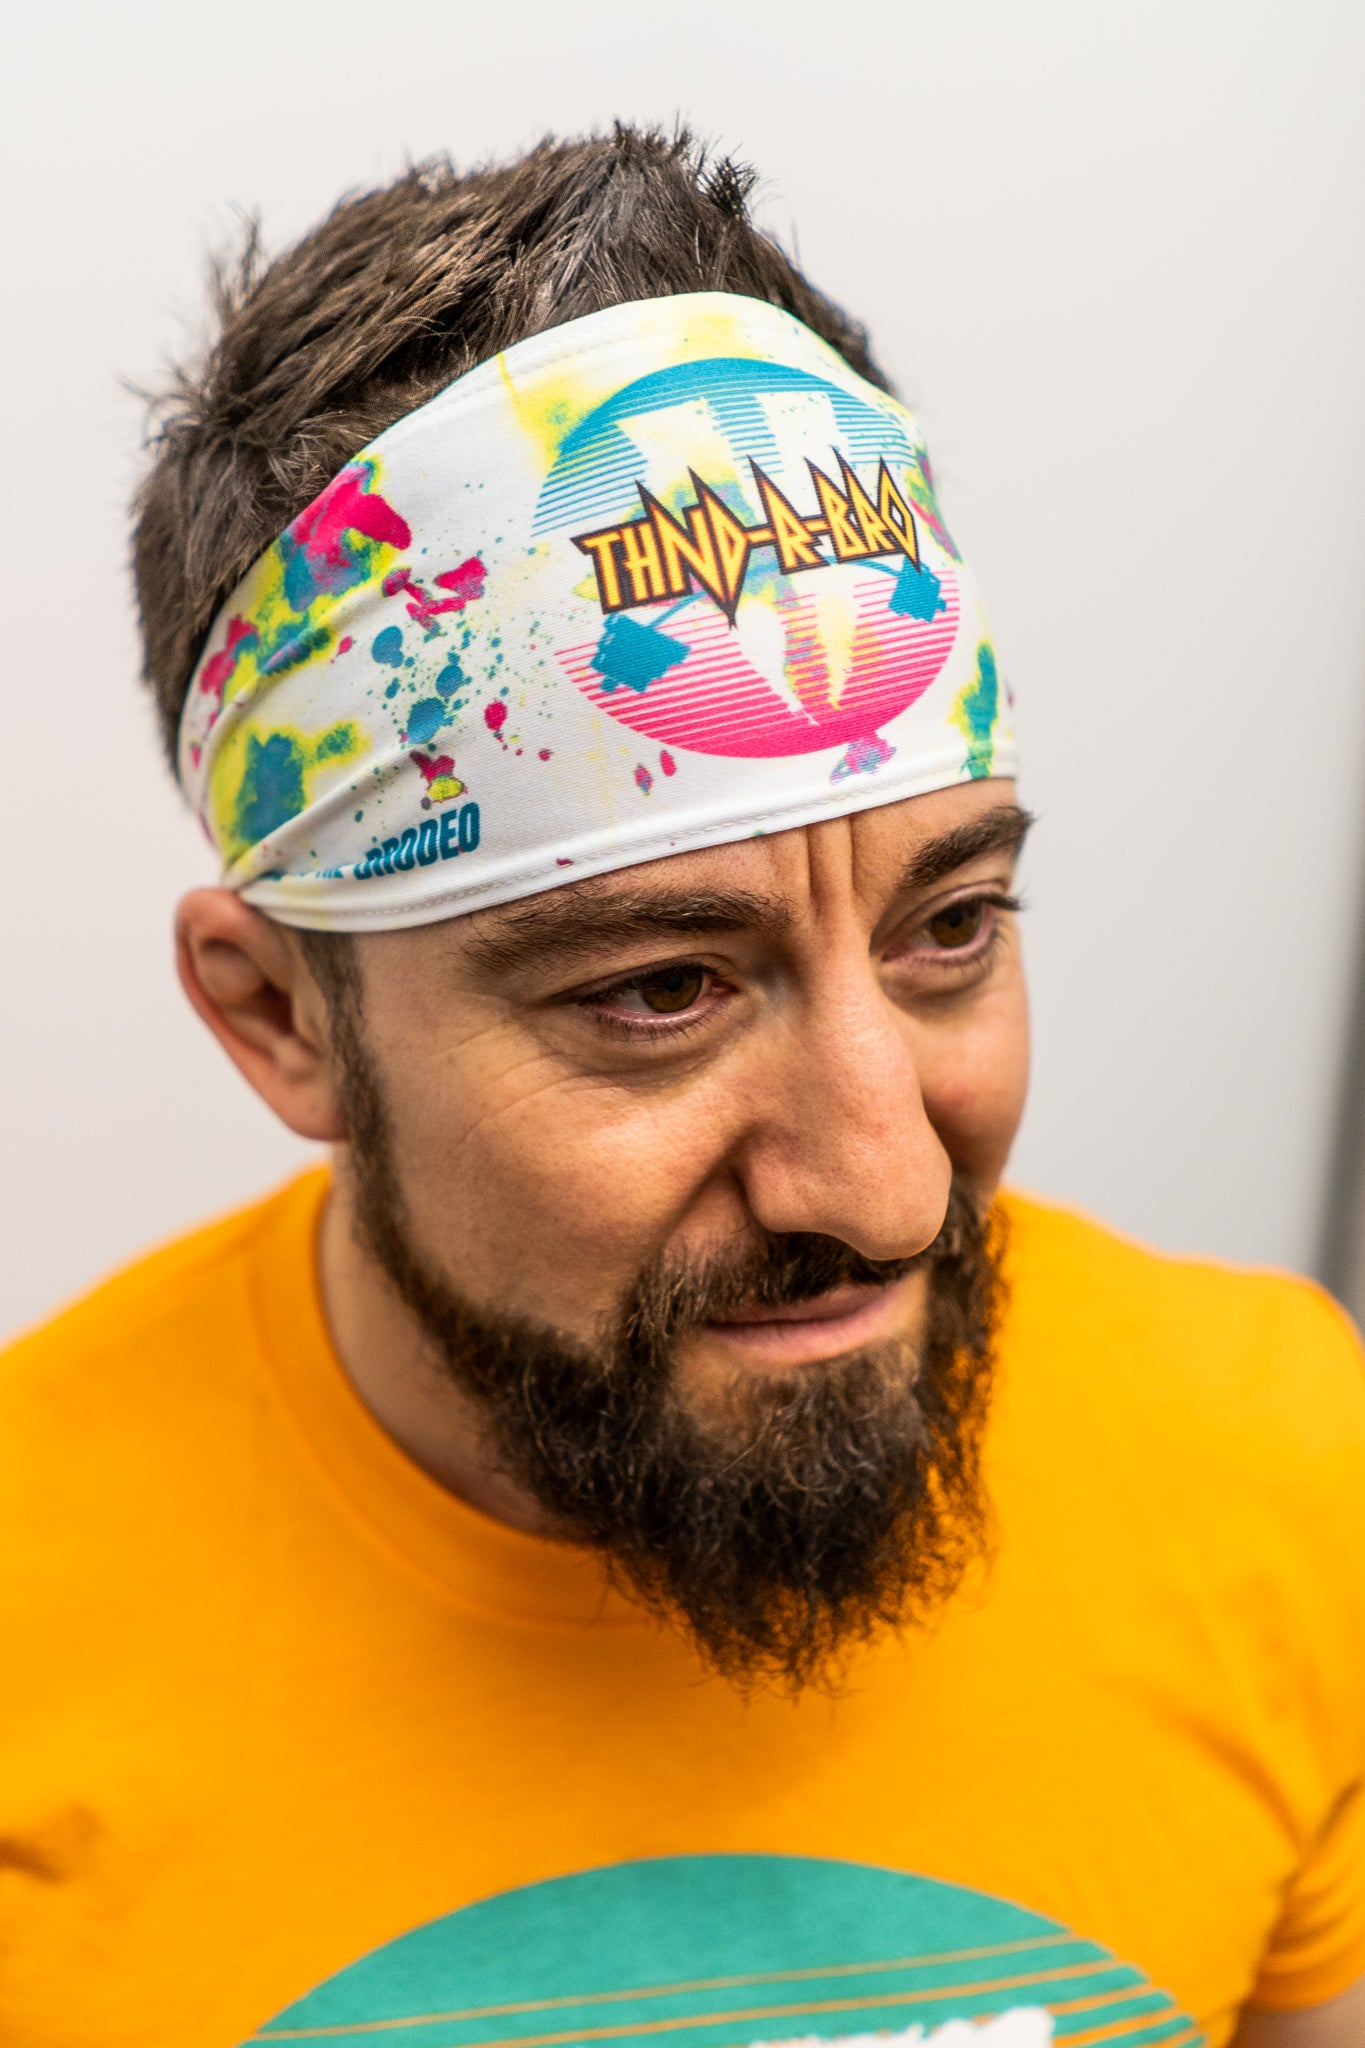 Thundrbro Headbands from JUNK Brands